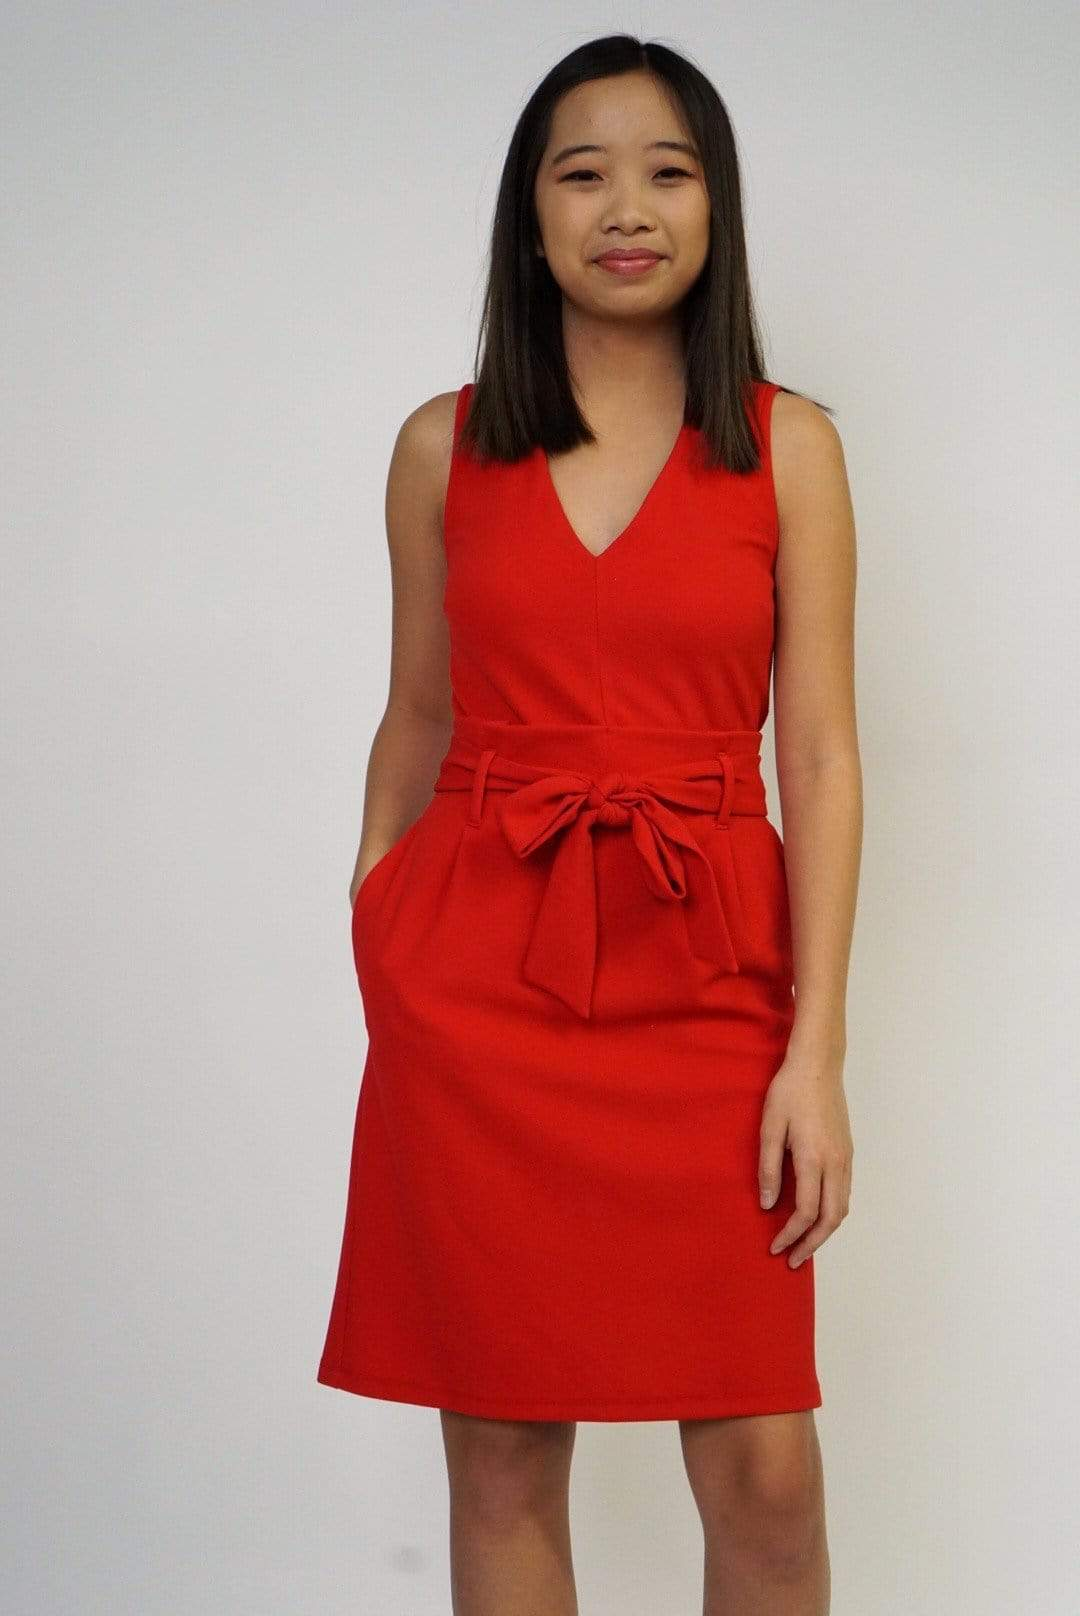 DRESS Cherry Work Dress - Chloe Dao